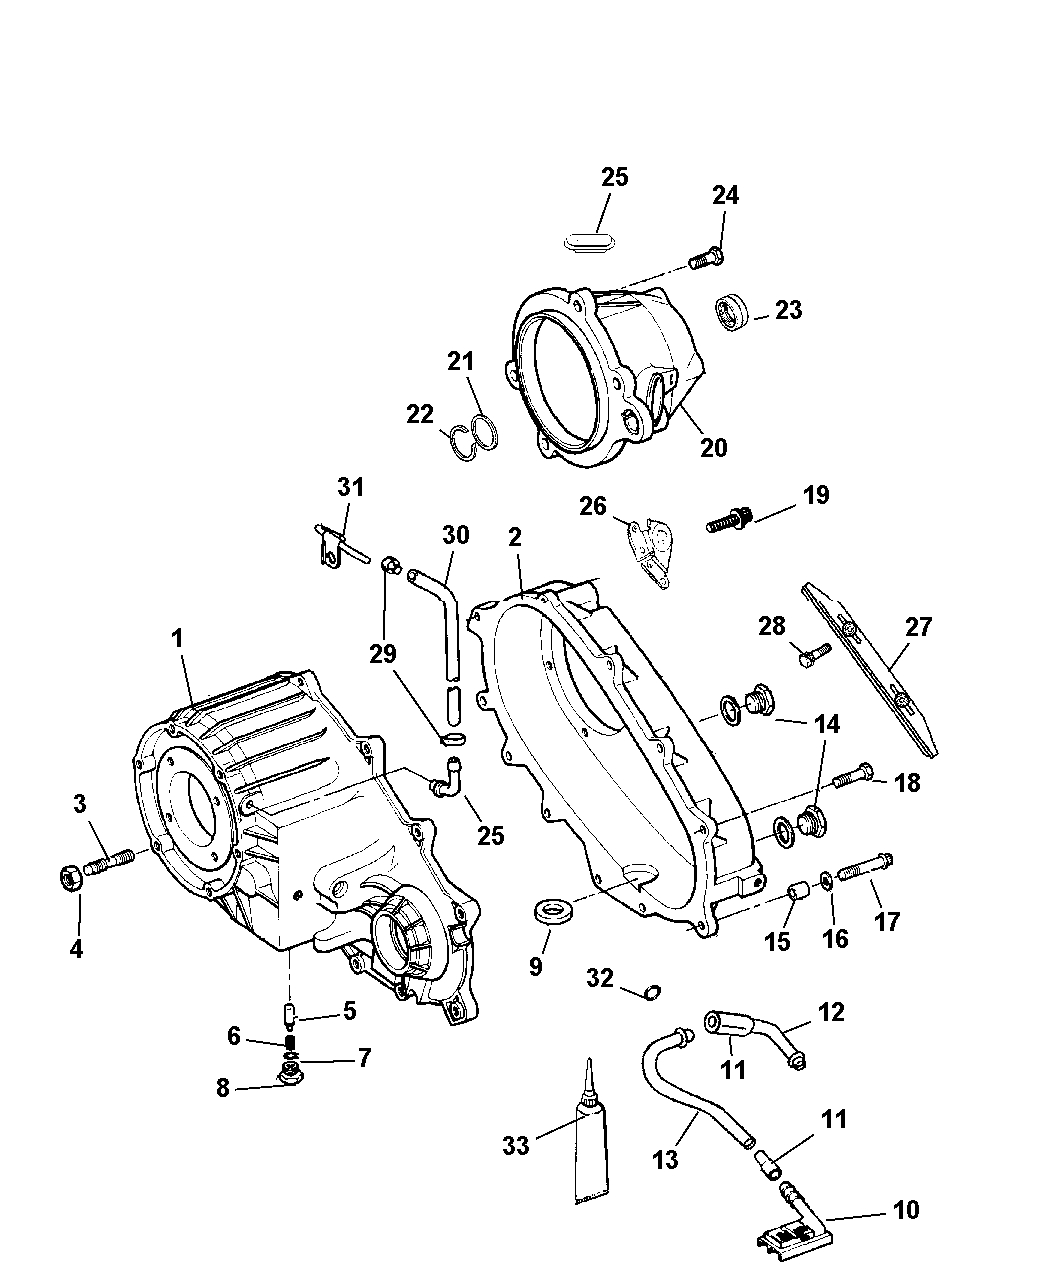 2004 Ford F250 4 Wheel Drive Front Suspension Diagram.html